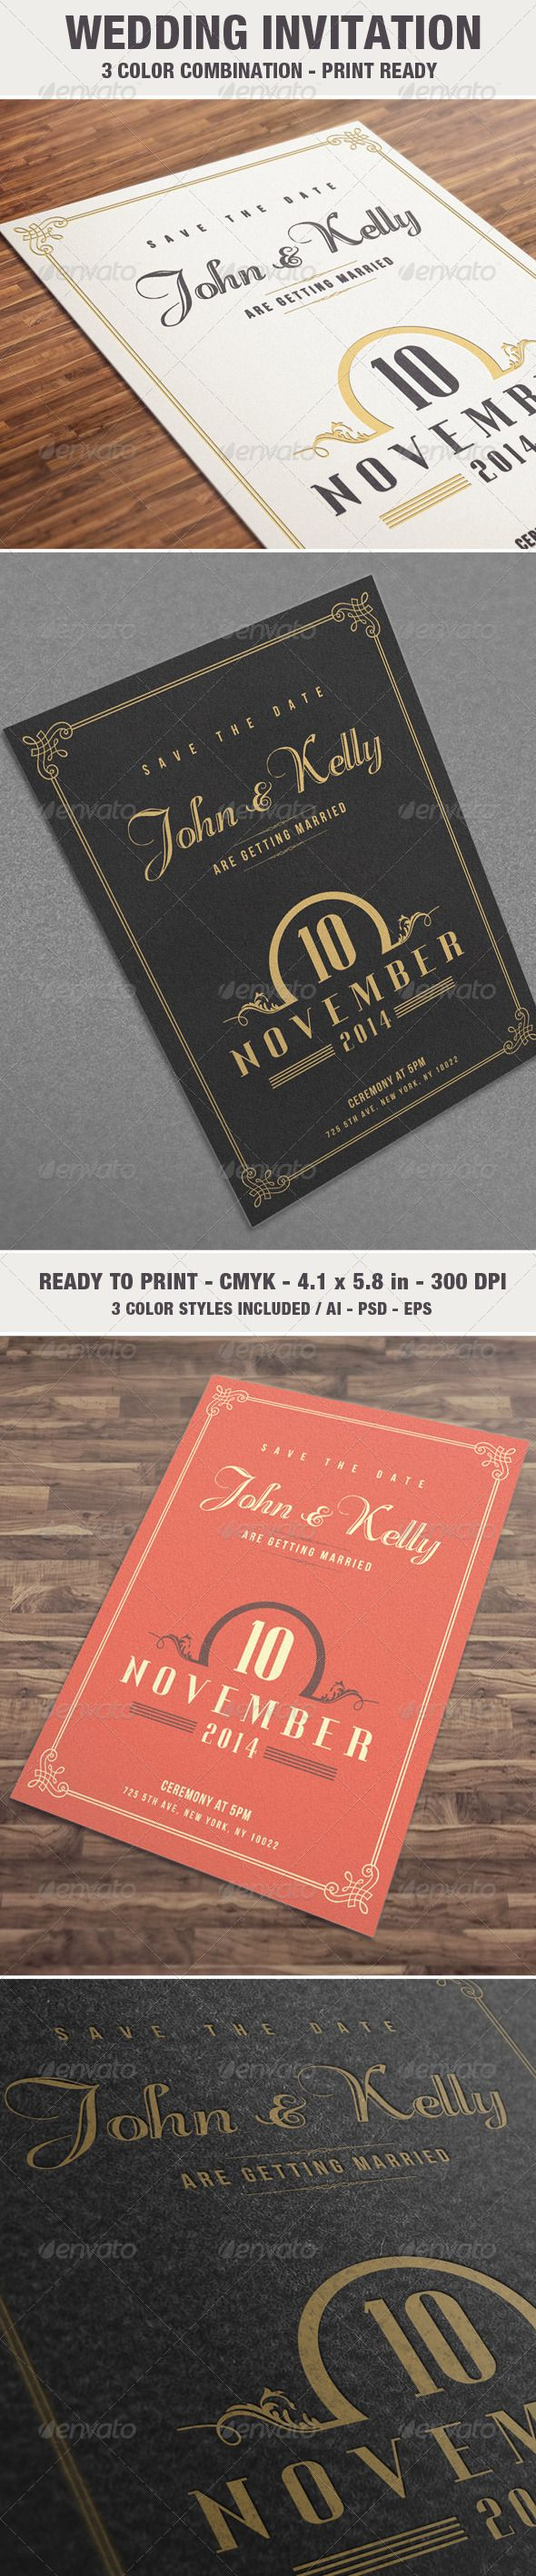 wedding card invitation cards online%0A Elegant  u     Vintage Wedding Invitation   Card V